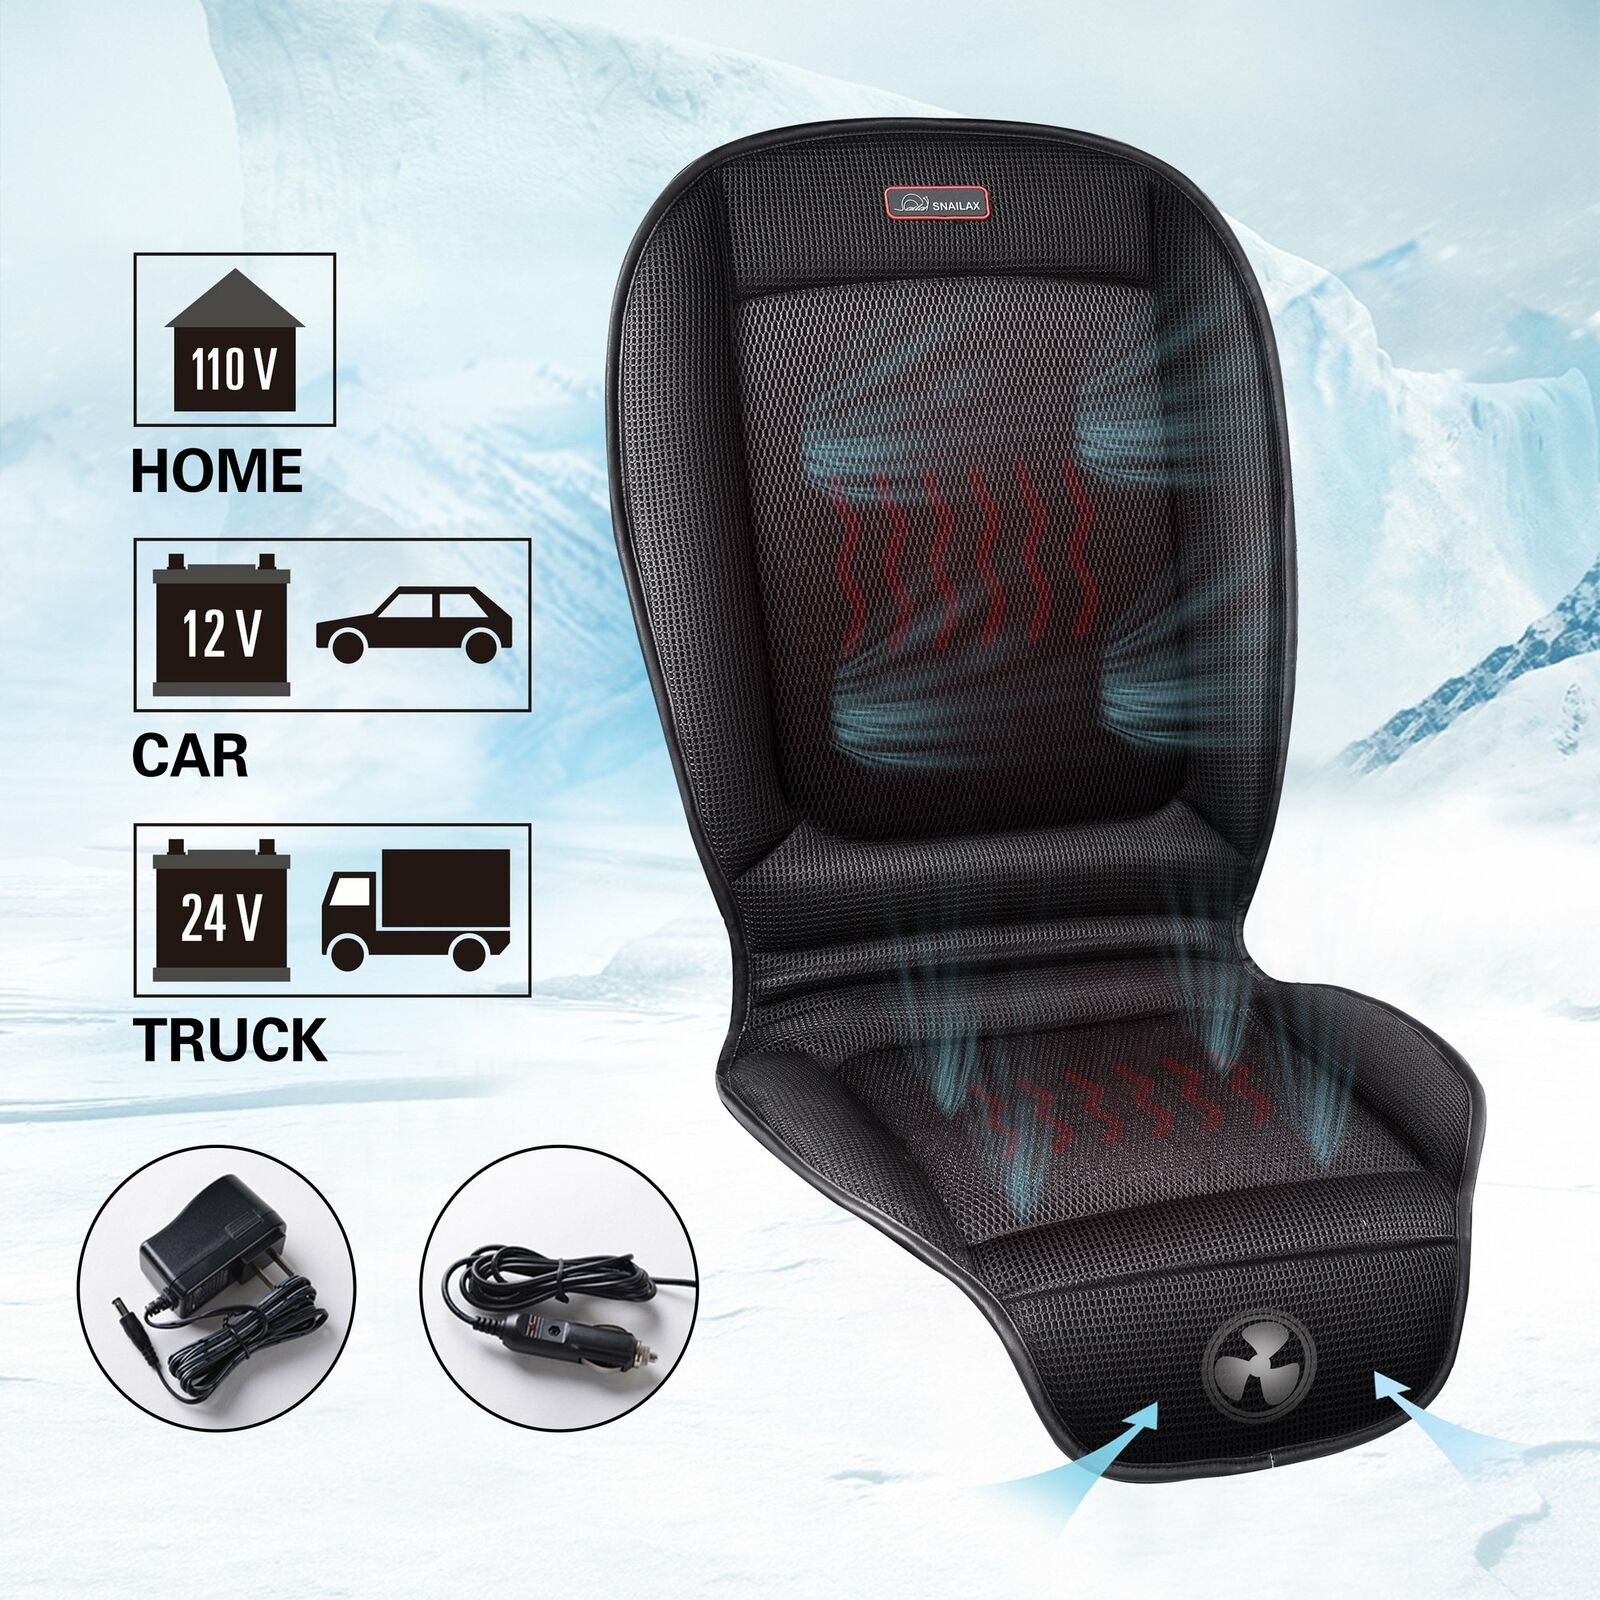 WARMITORY Heated Seat Cushion Cover Universial 12V//24V Seat Warmer with 3 Levels Intelligent Heating Setting Automatic Shut-Off Timer Leatheret Beige Headrest Seat Heater for Full Chair Seat